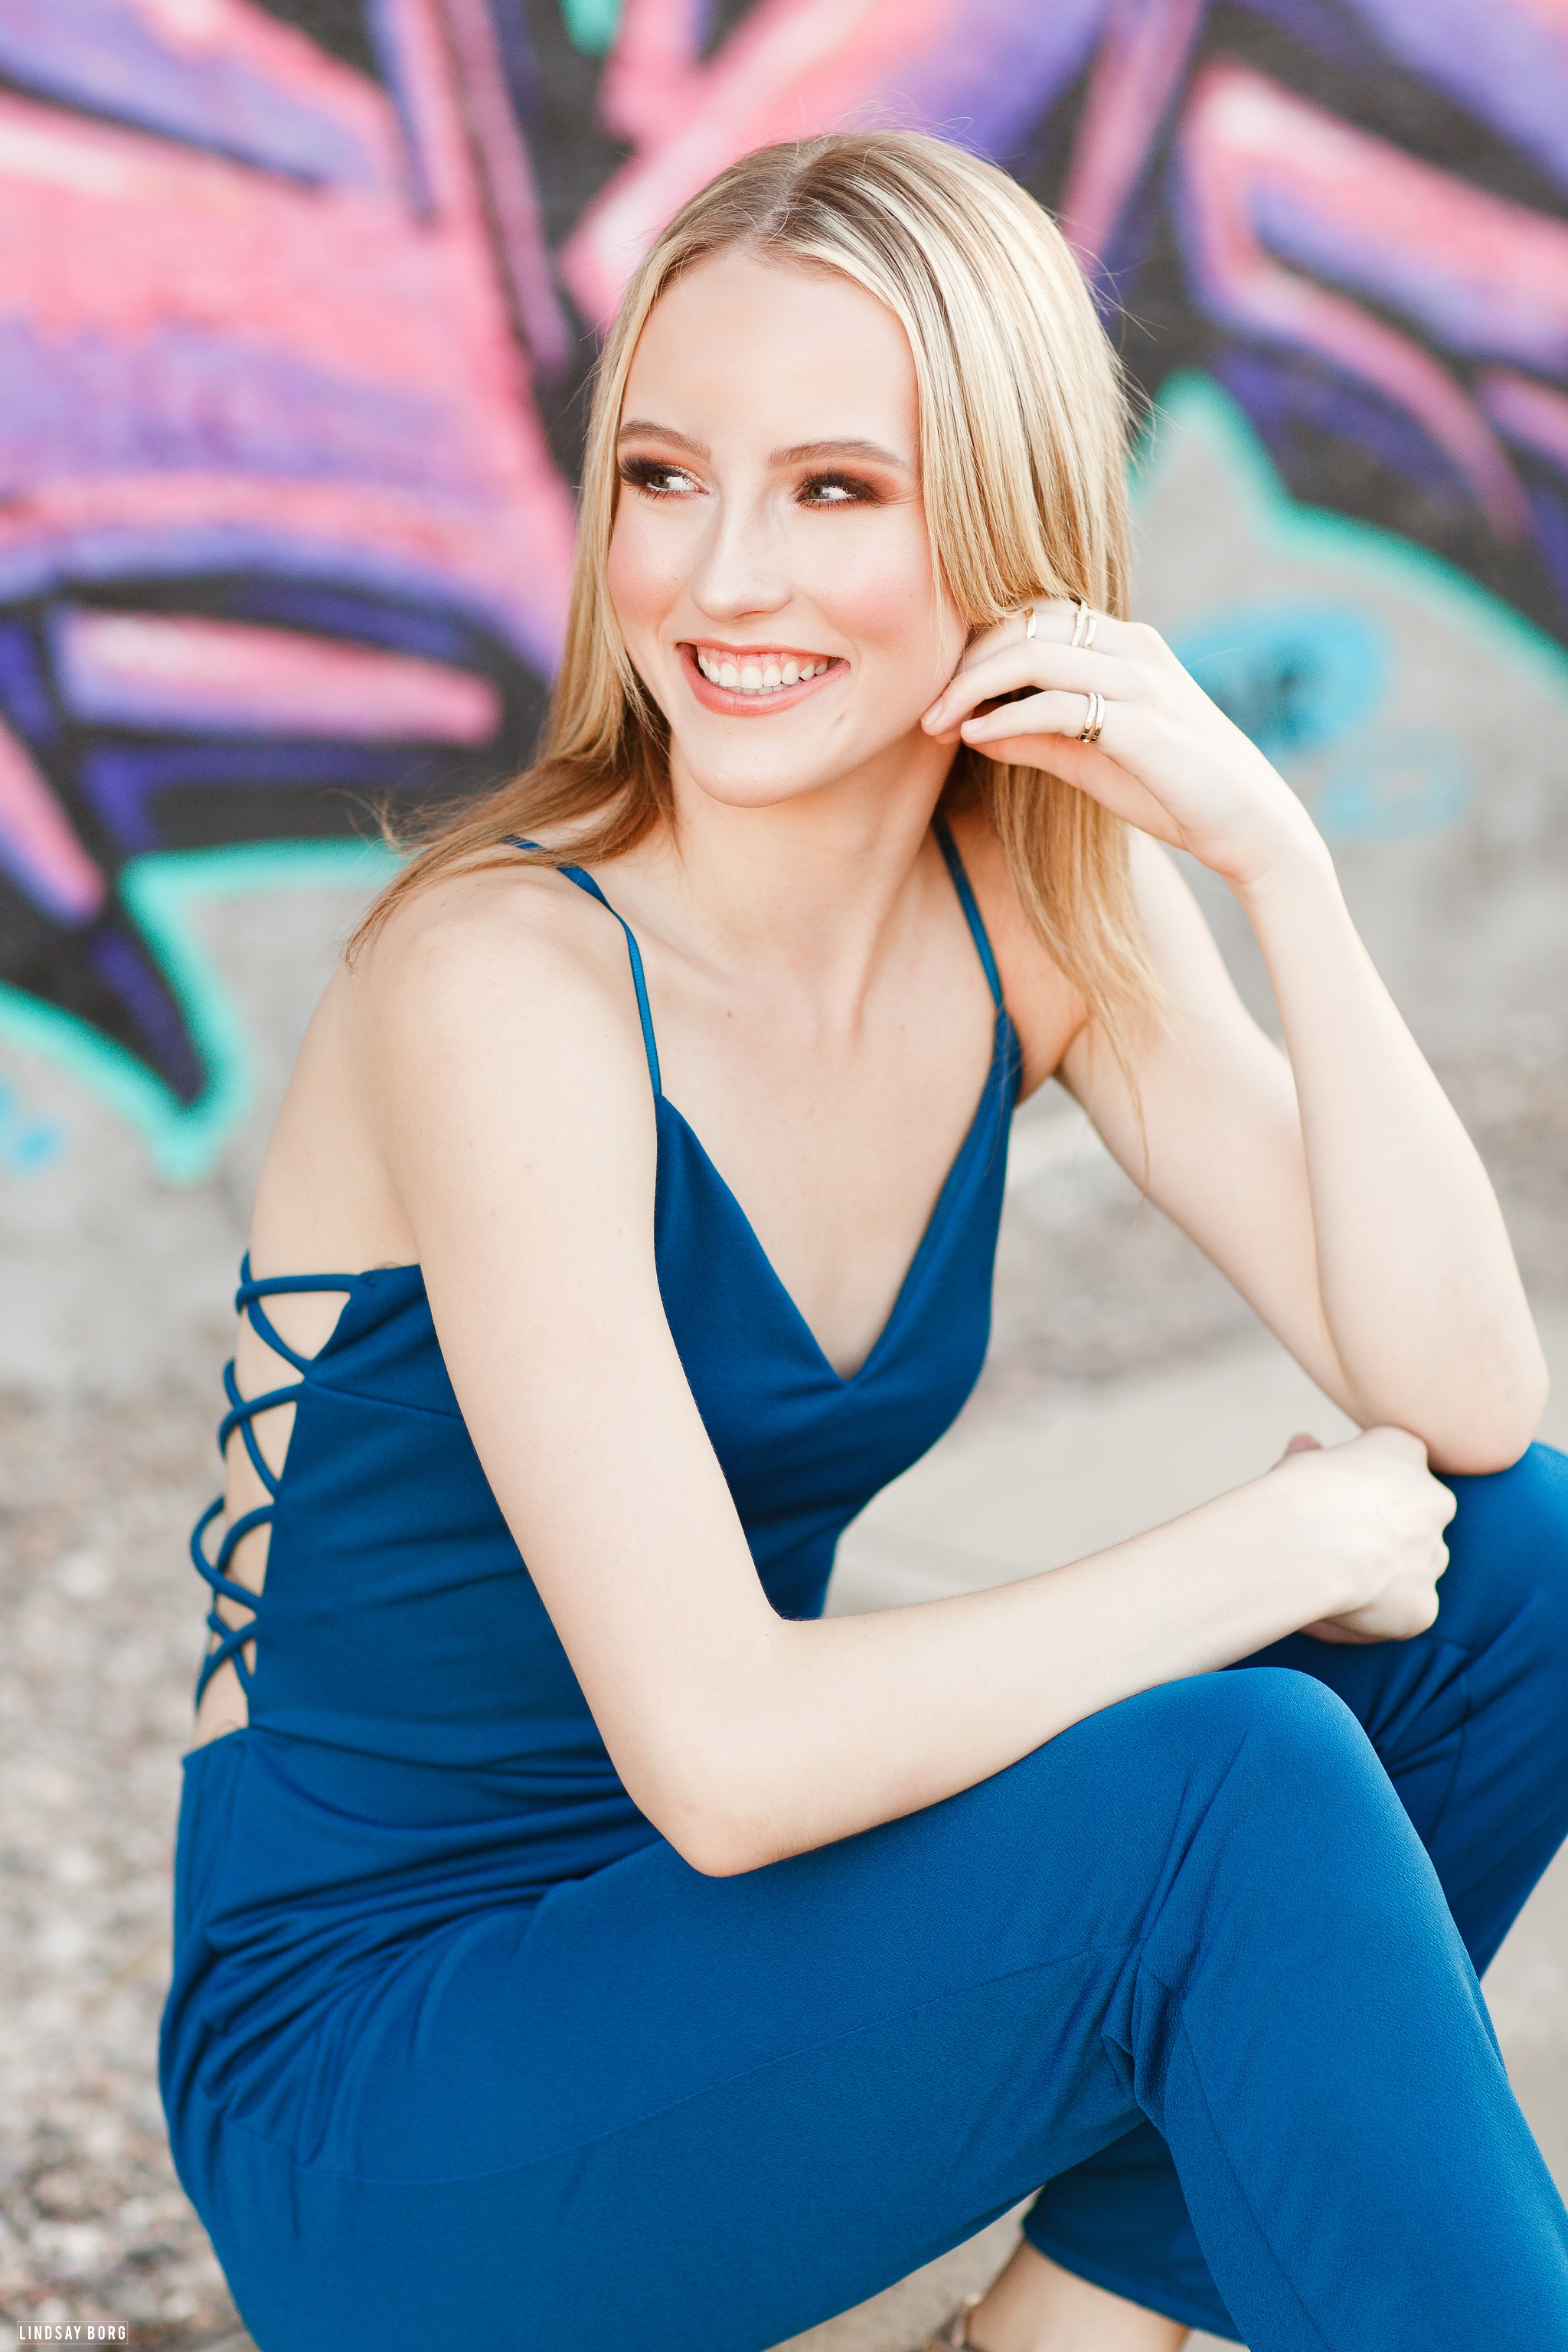 Lindsay-Borg-Arizona-Senior-Portraits (23).jpg